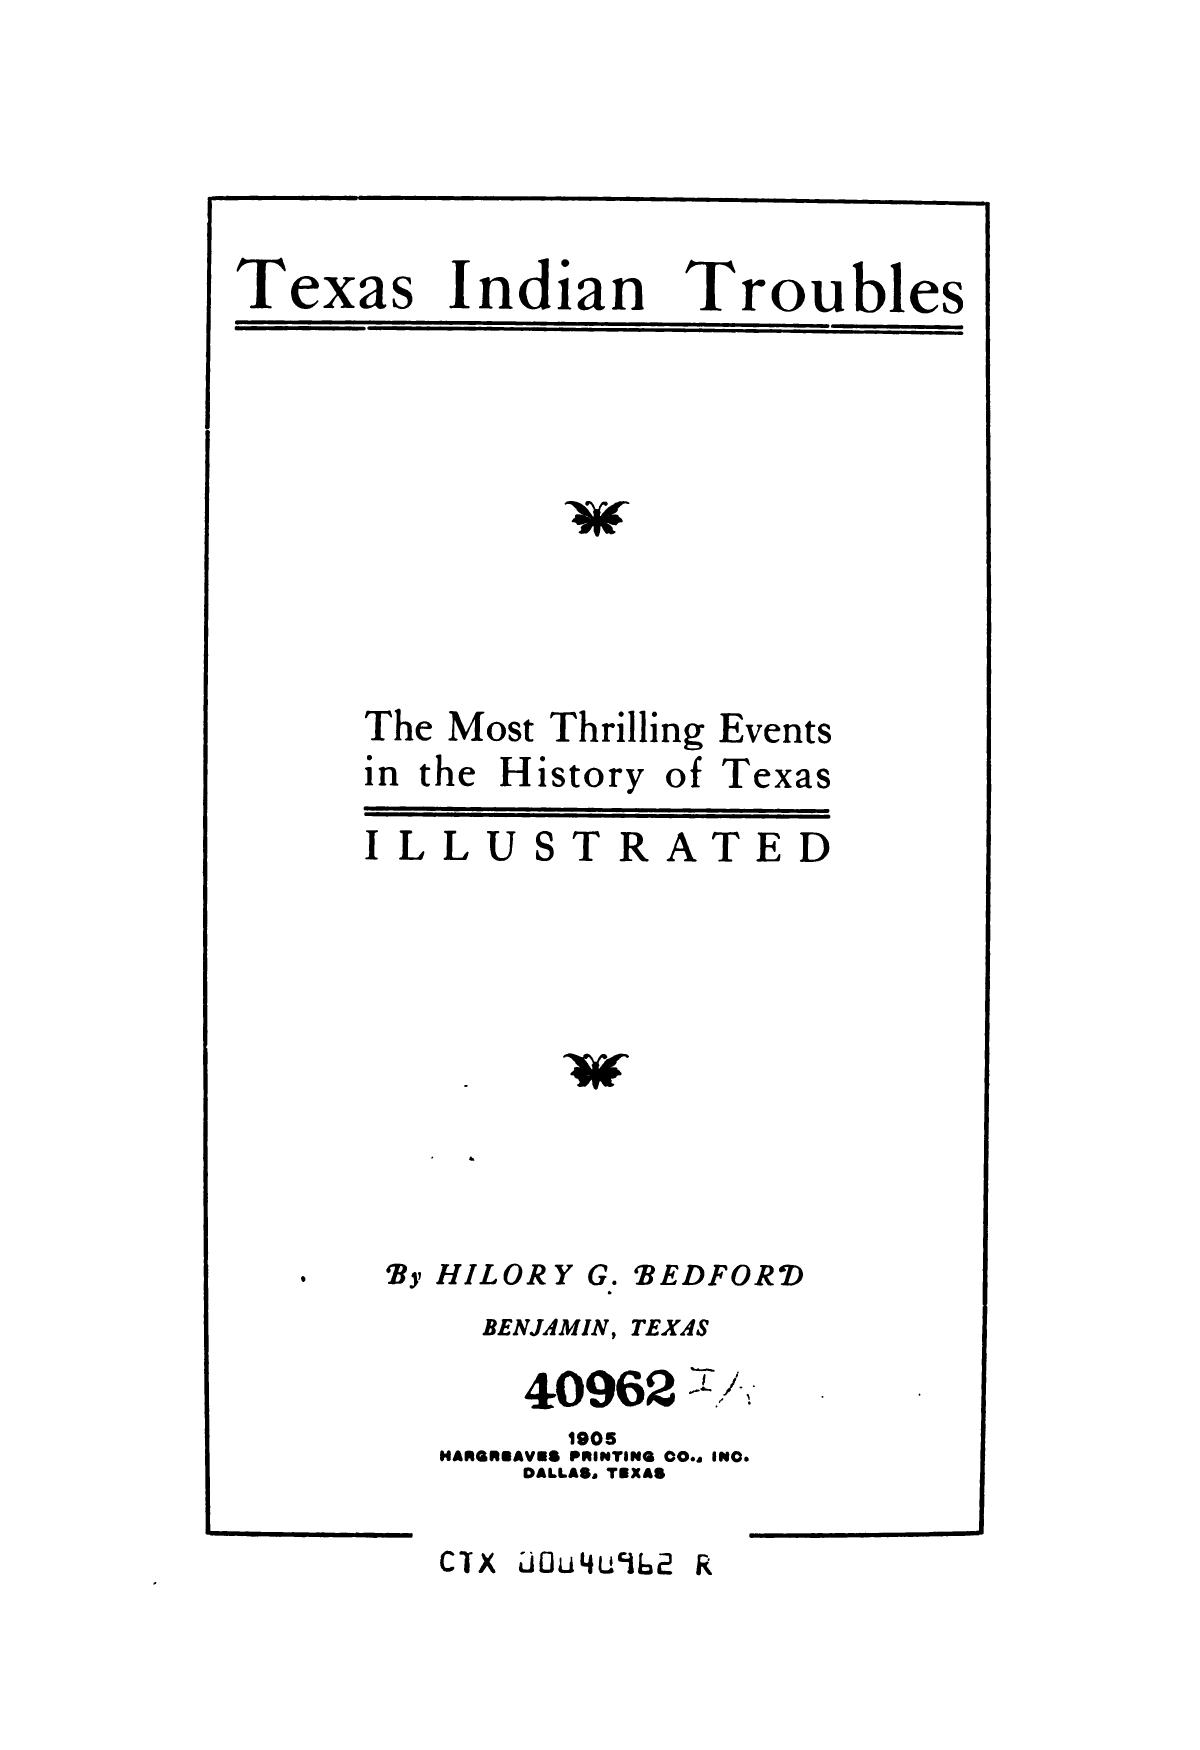 Texas Indian troubles. The most thrilling events in the history of Texas illustrated                                                                                                      Title Page